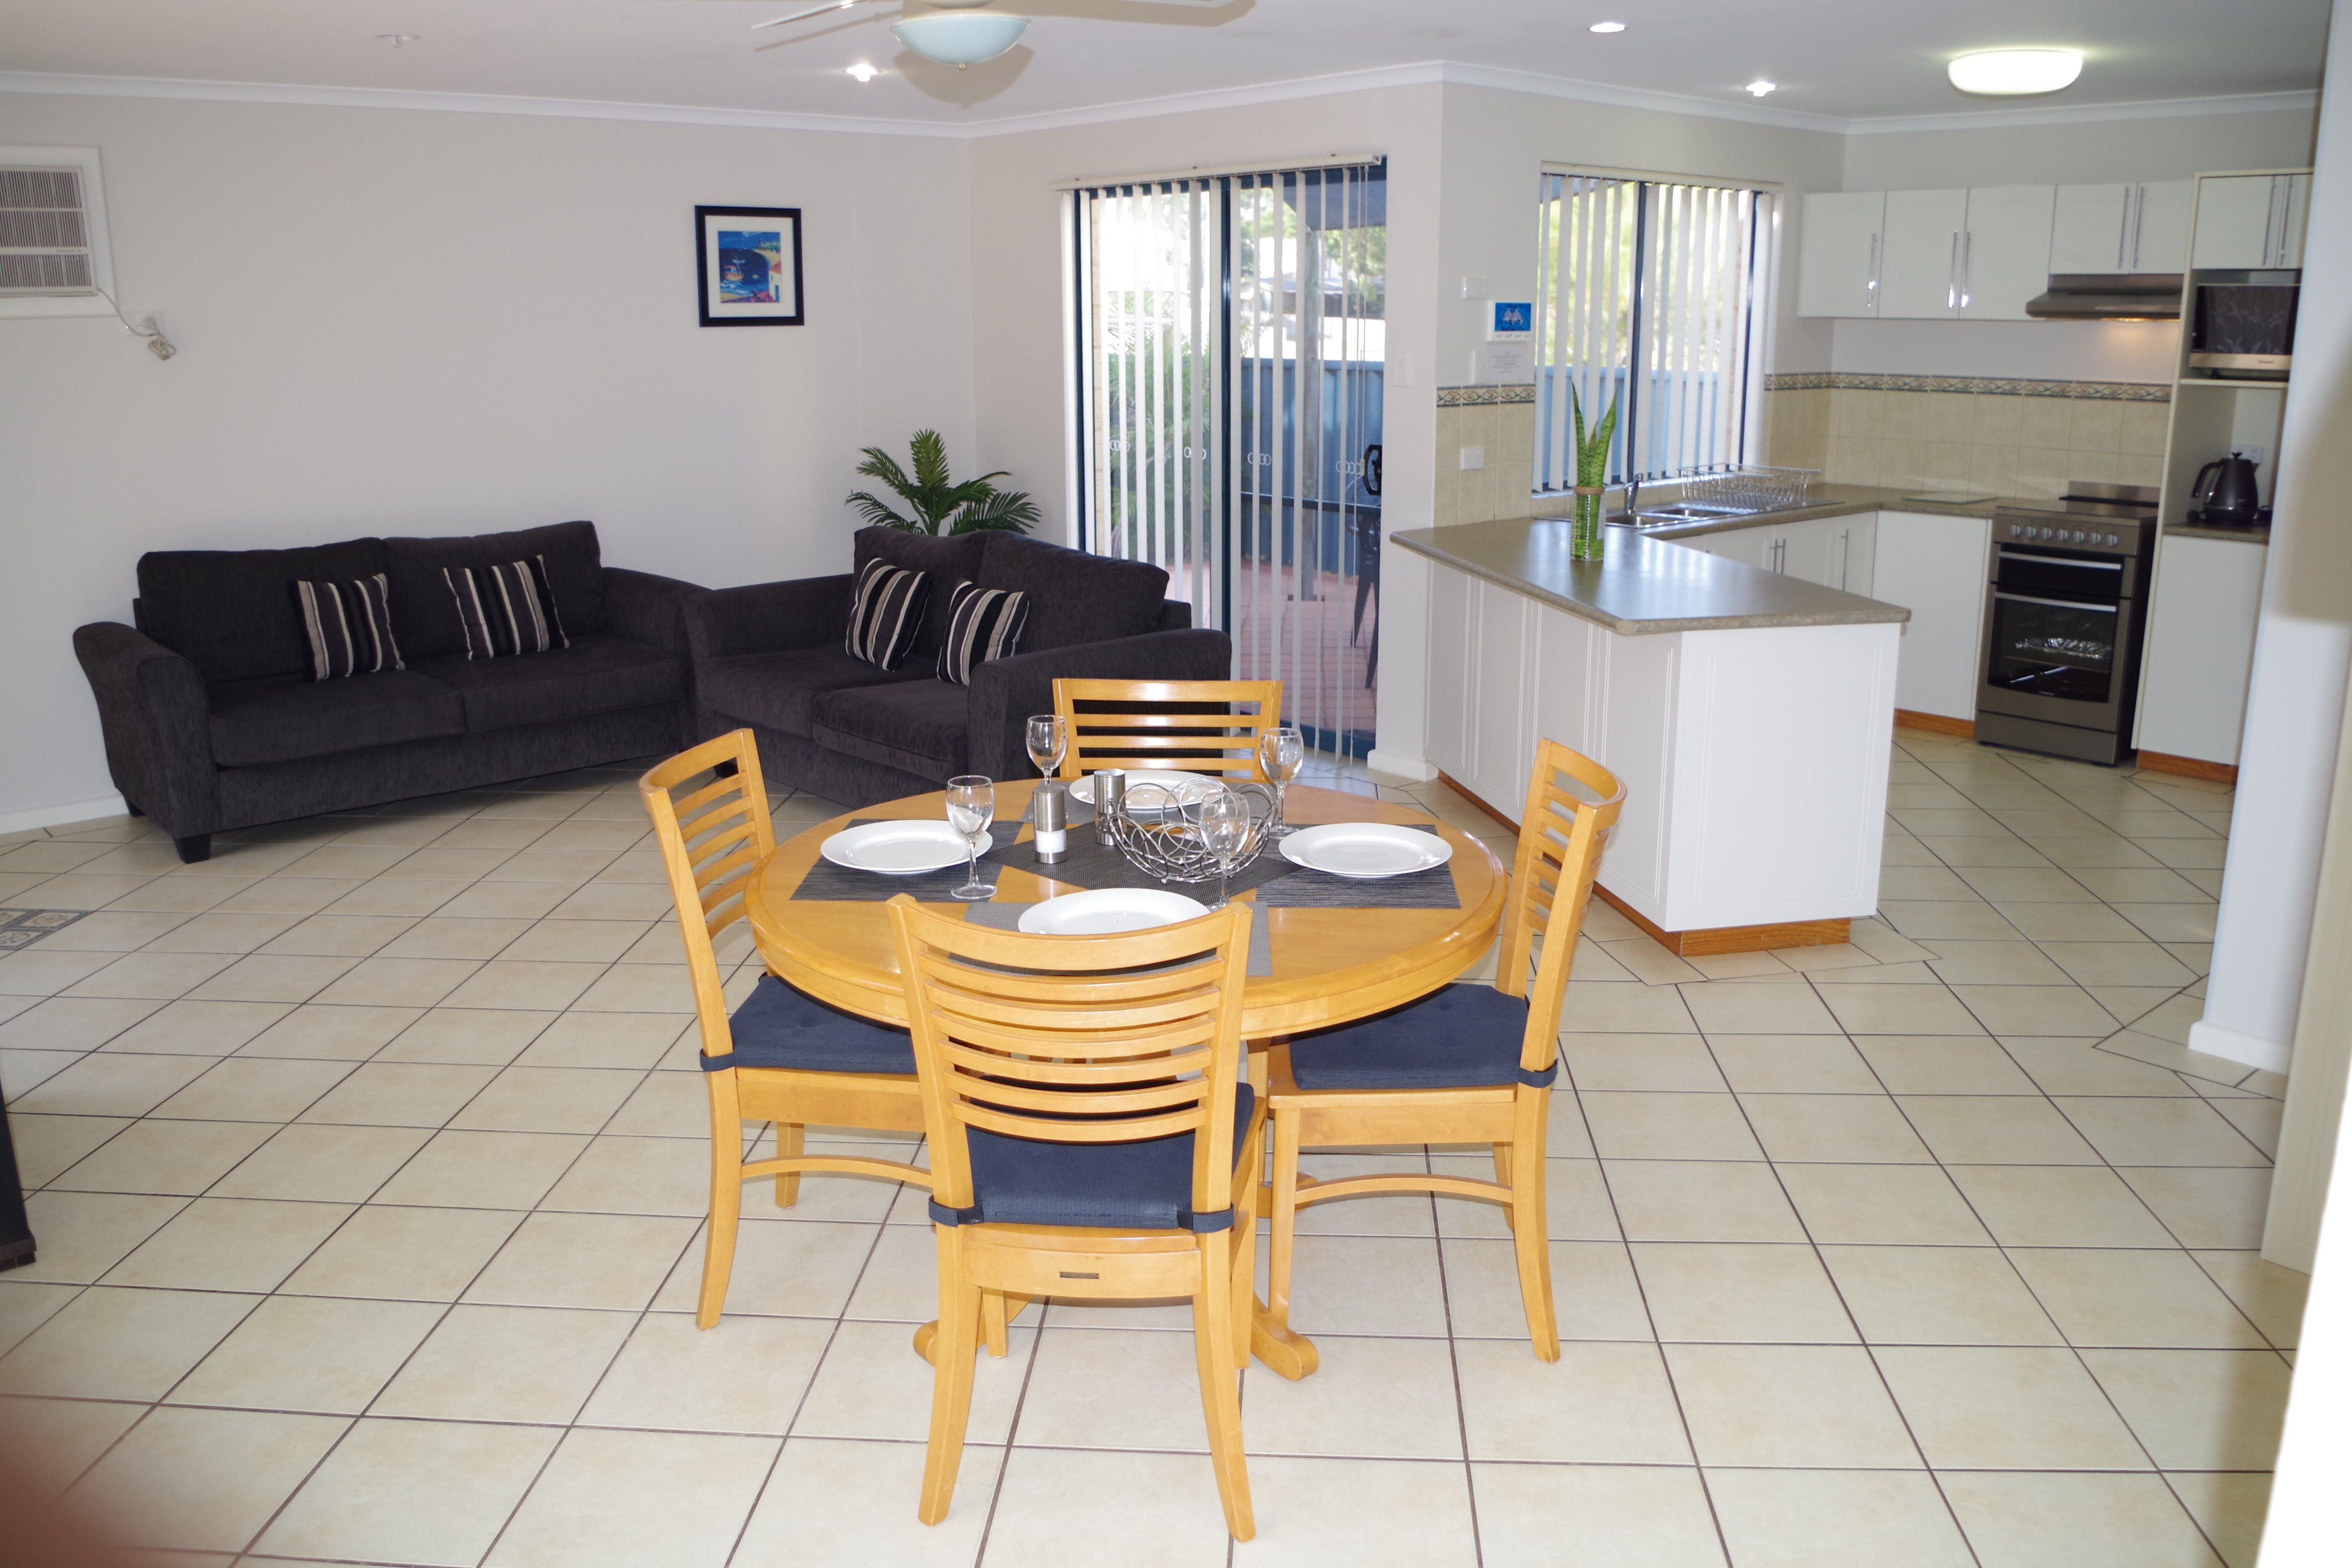 Kalbarri Blue Ocean Villas is your perfect choice for fully self contained Kalbarri accommodation in Kalbarri WA.